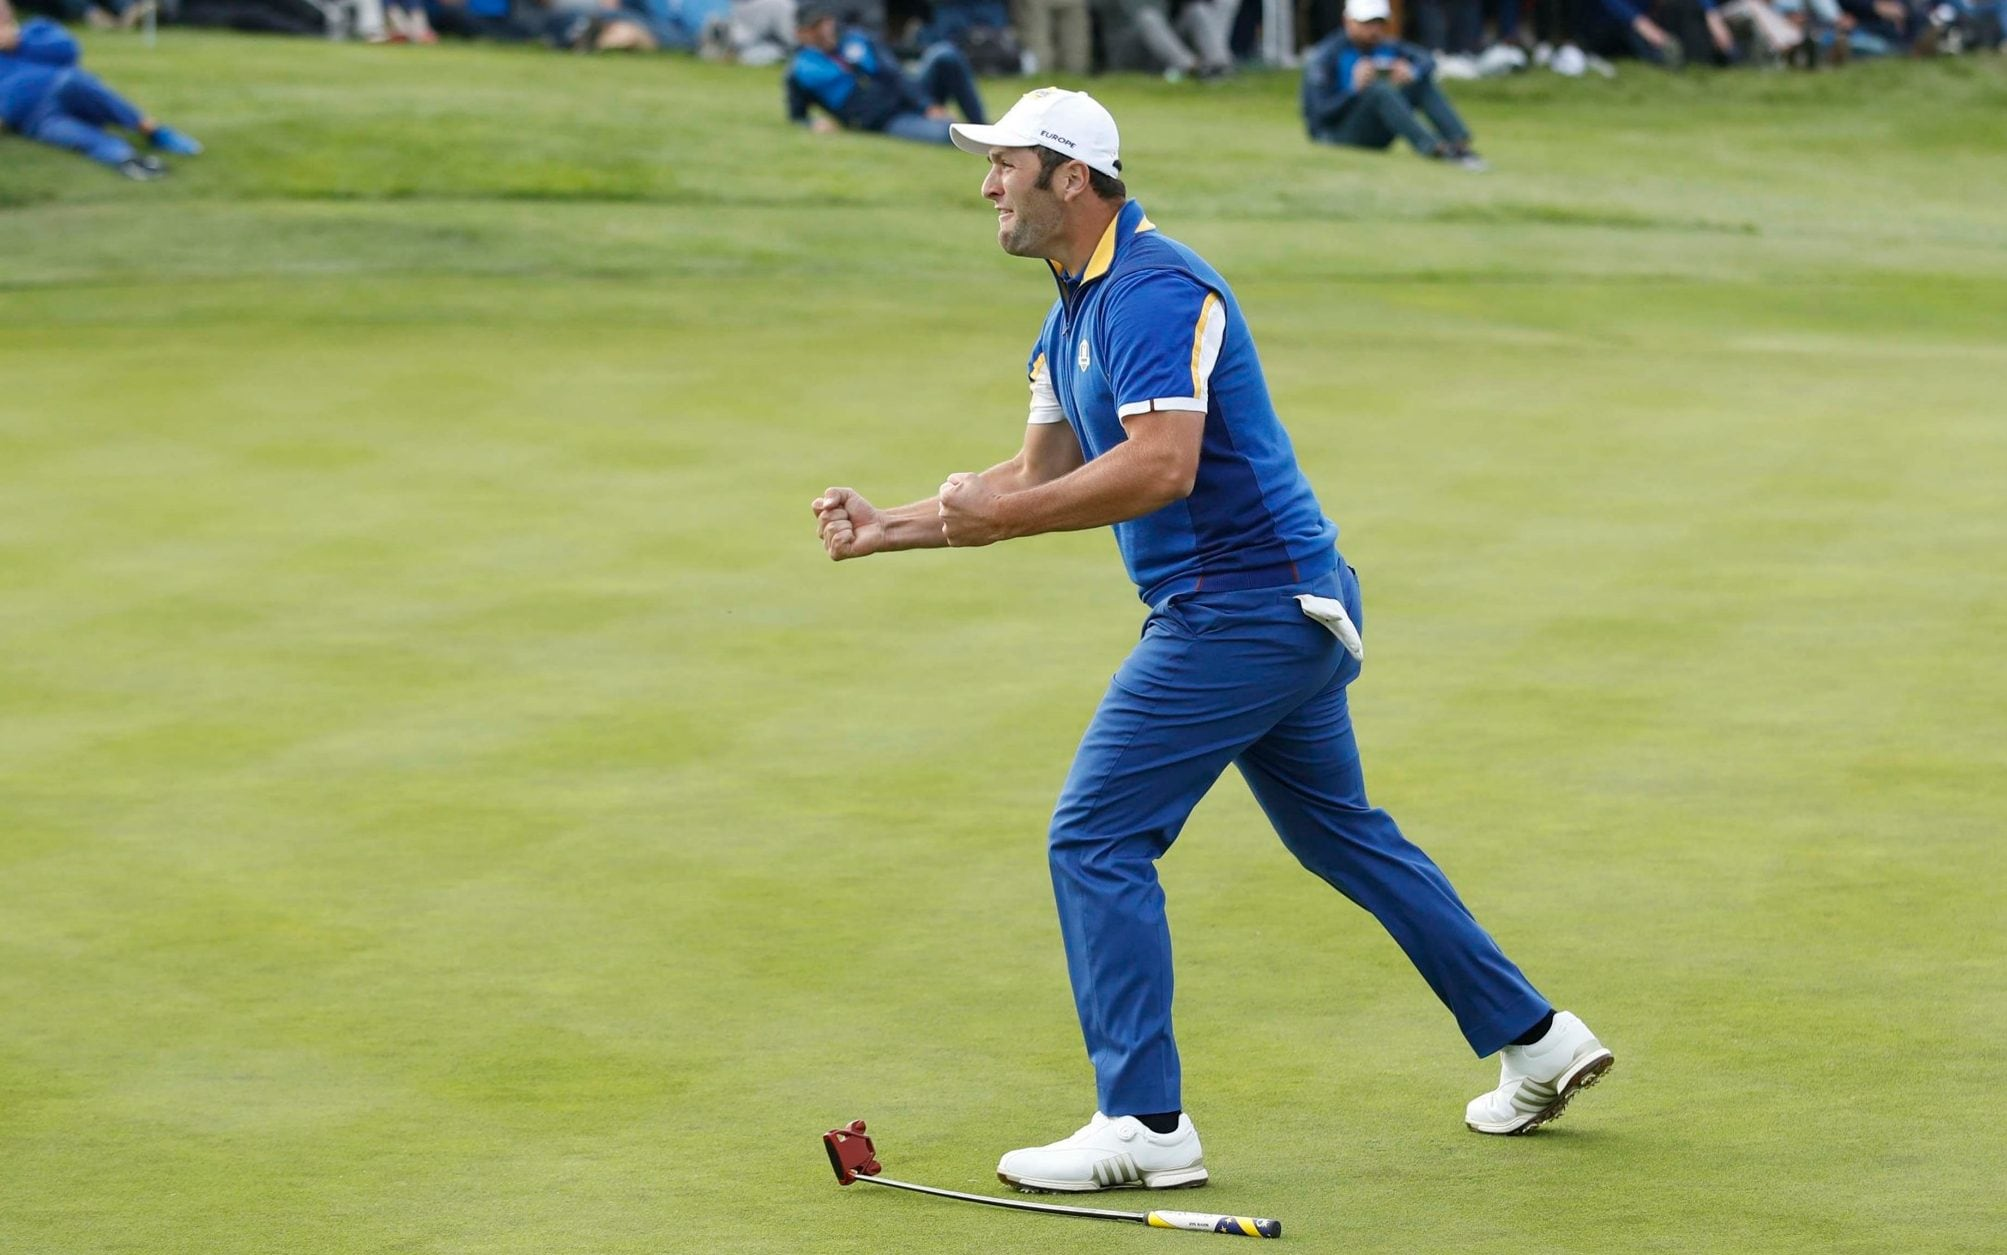 Francesco Molinari secures winning point as Europe regain Ryder Cup in dominant style